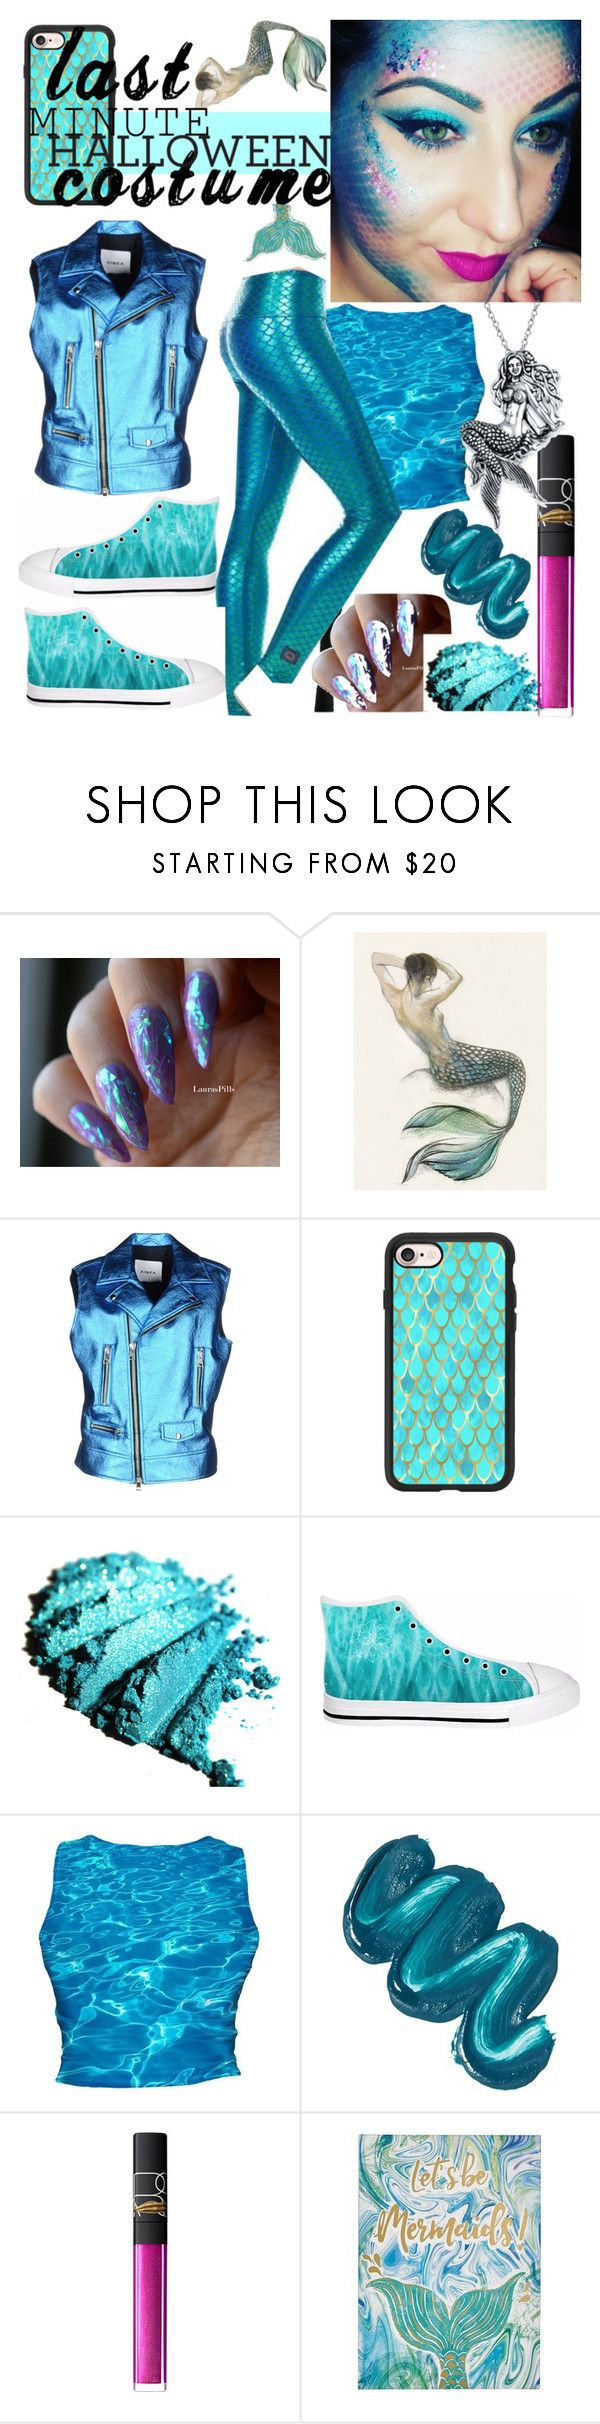 """""""Last-minute Costume"""" by mdfletch ❤ liked on Polyvore featuring AINEA, Casetify, Purusha People, Mermaid Salon, NARS Cosmetics, Graham & Brown, Bling Jewelry and lastminutecostume"""